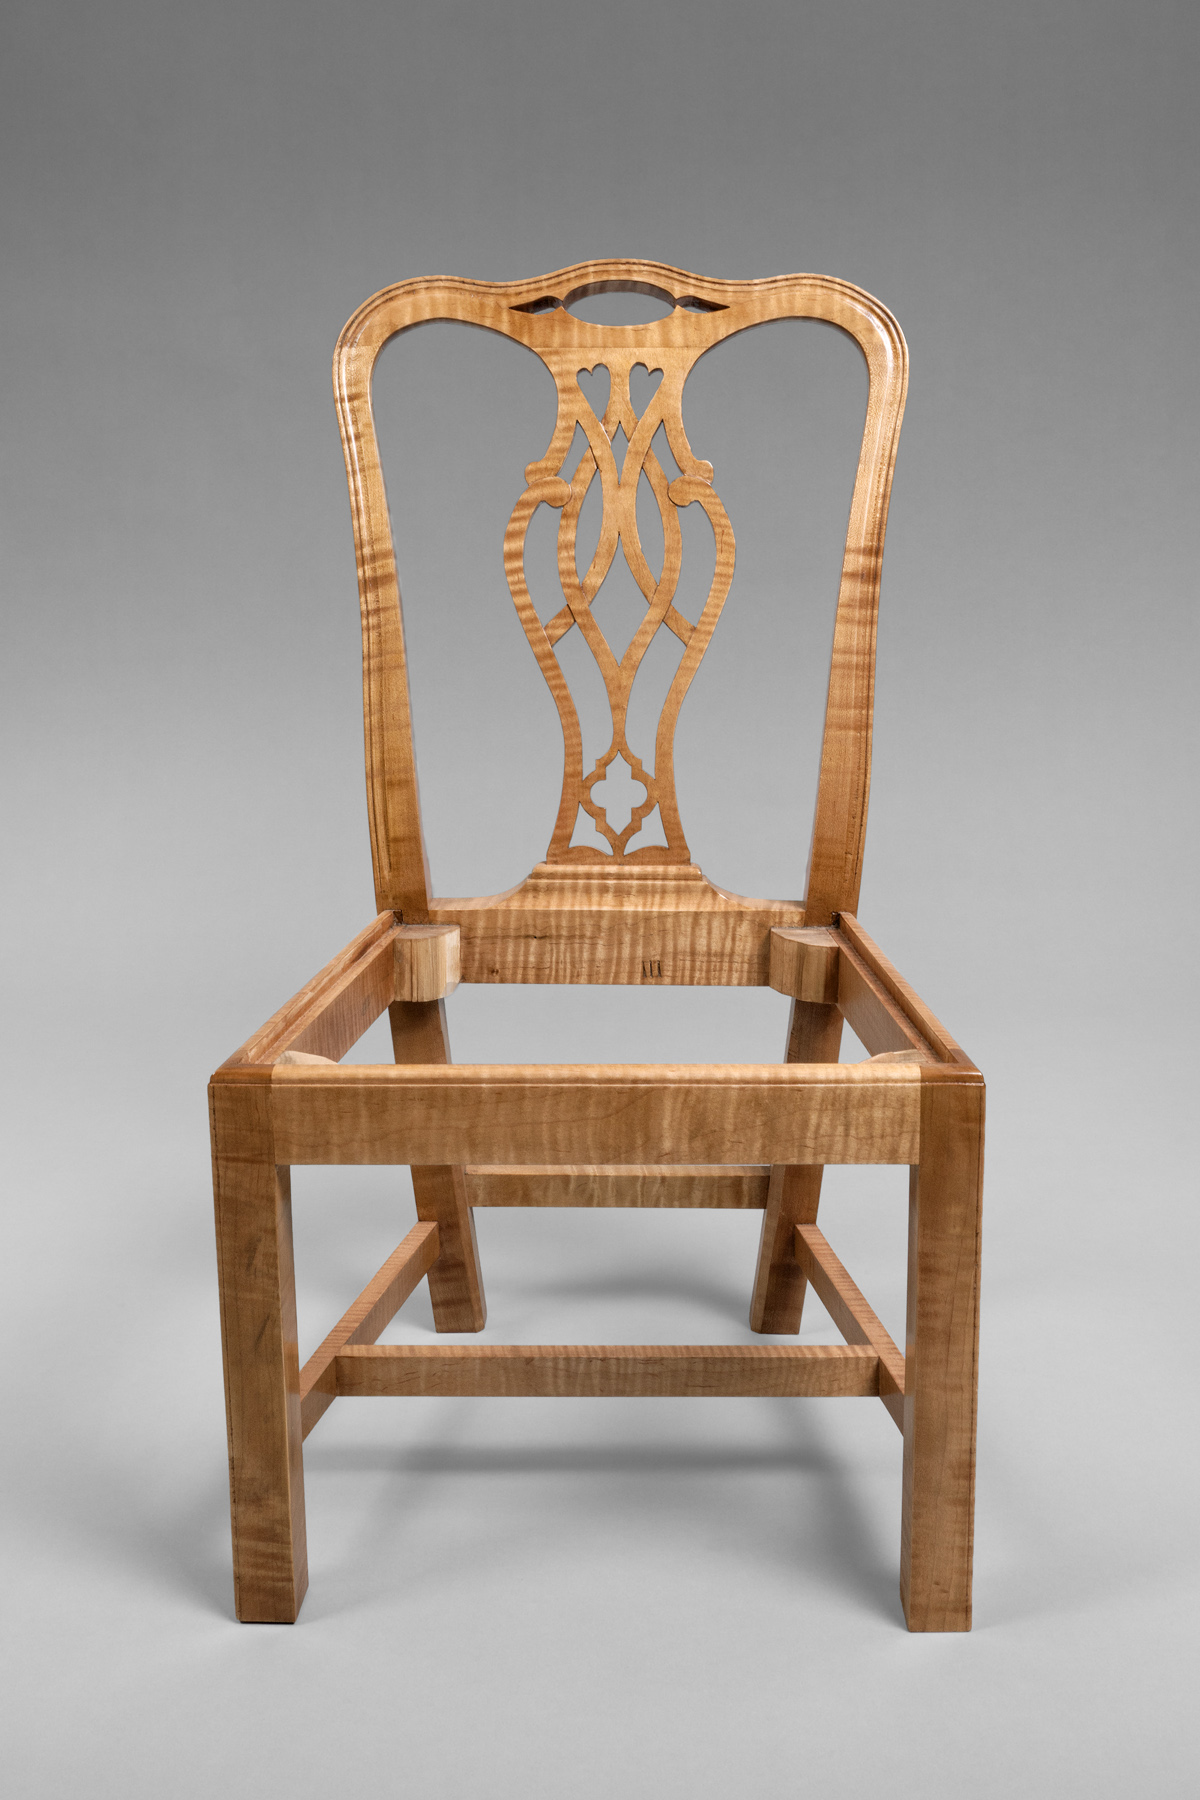 4/5 SCALE CHAIRS IN THE CHIPPENDALE STLYE HAND CRAFTED IN CURLY MAPLE